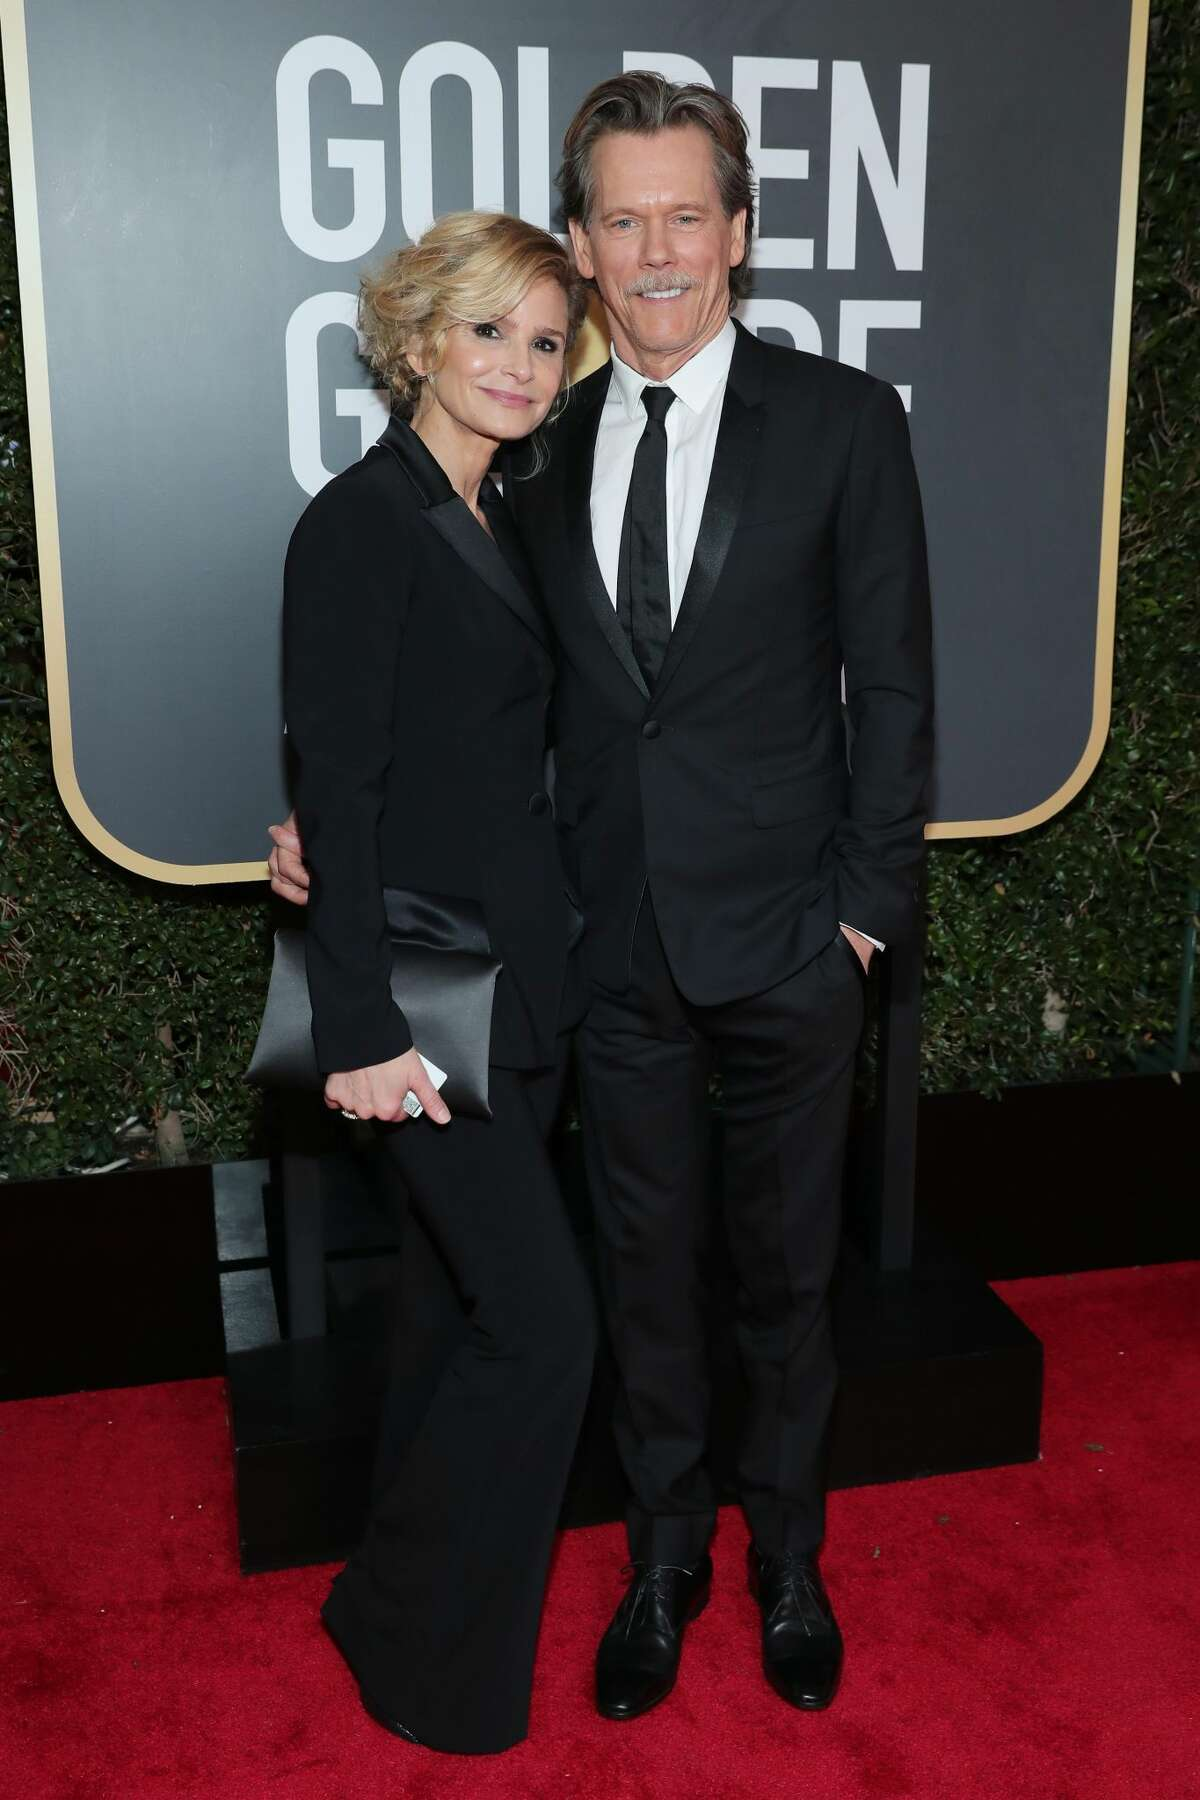 Actors Kyra Sedgwick and Kevin Bacon arrive to the 75th Annual Golden Globe Awards held at the Beverly Hilton Hotel on January 7, 2018. Kevin Bacon spotted filming in Westchester Actor Kevin Bacon of Sharon, Conn. was seen filming Showtime's drama